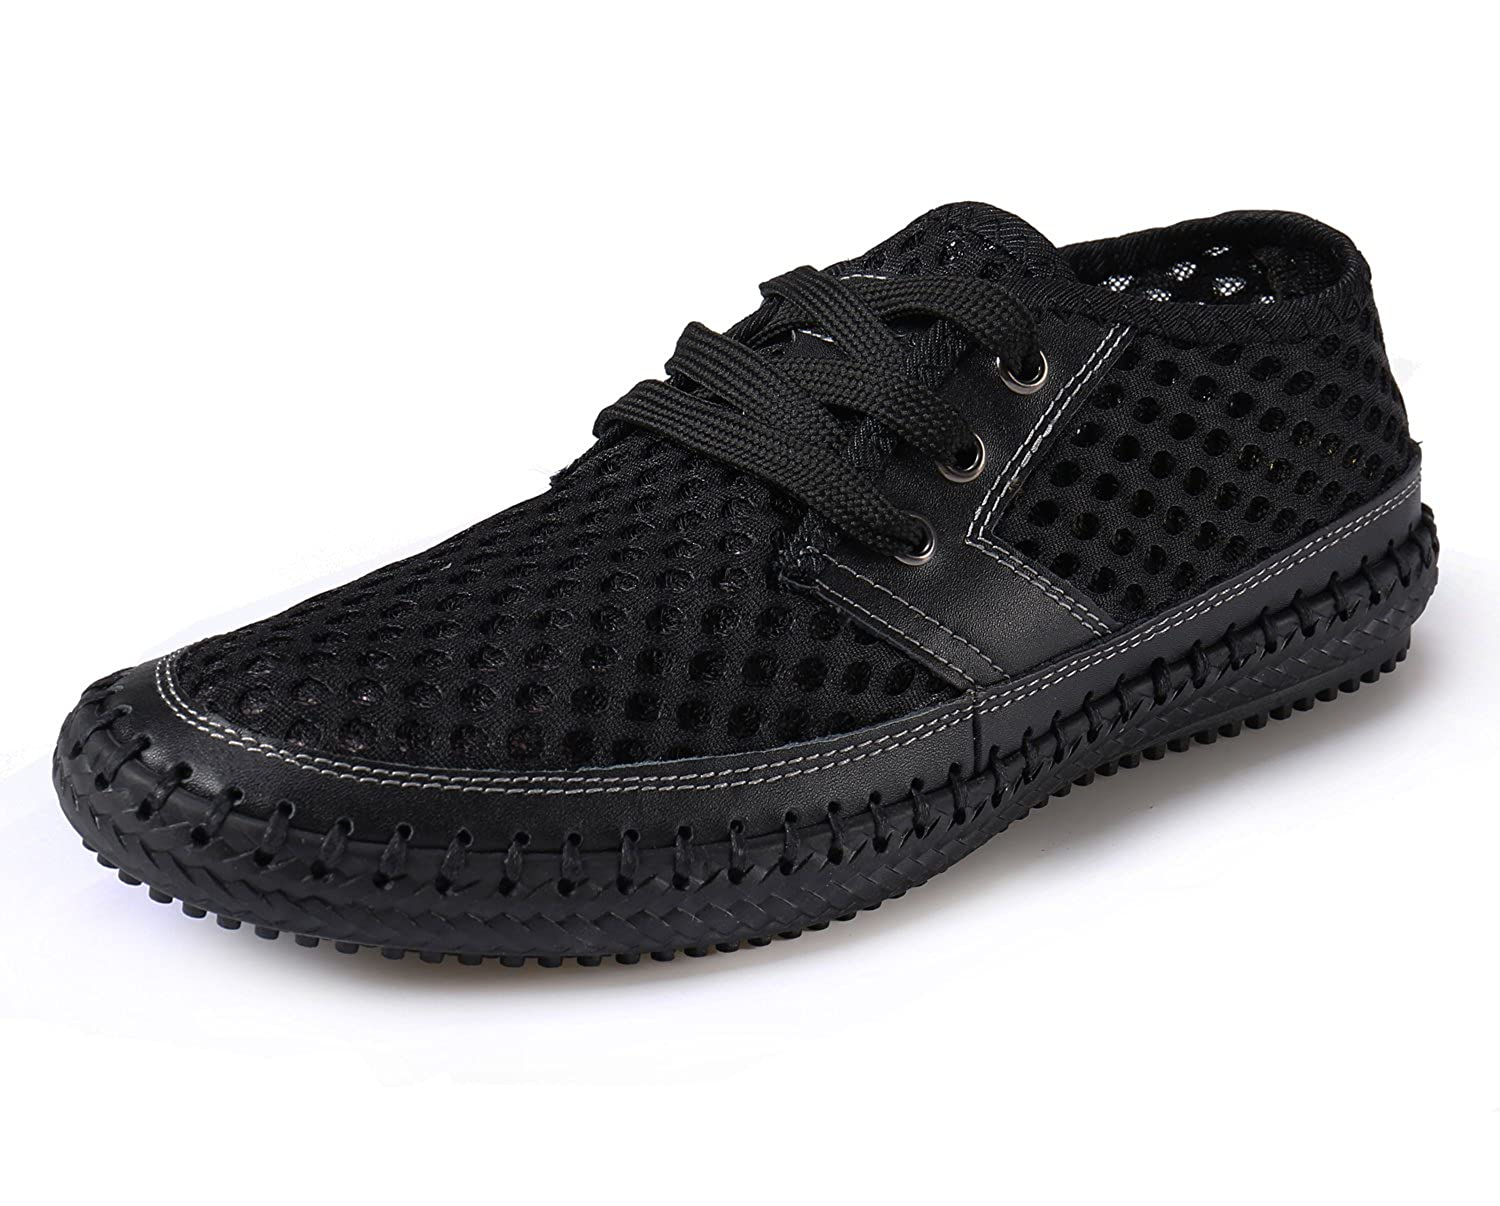 Norocos Men's Water Shoes Mesh Casual Walking Shoes Slip-On Loafers